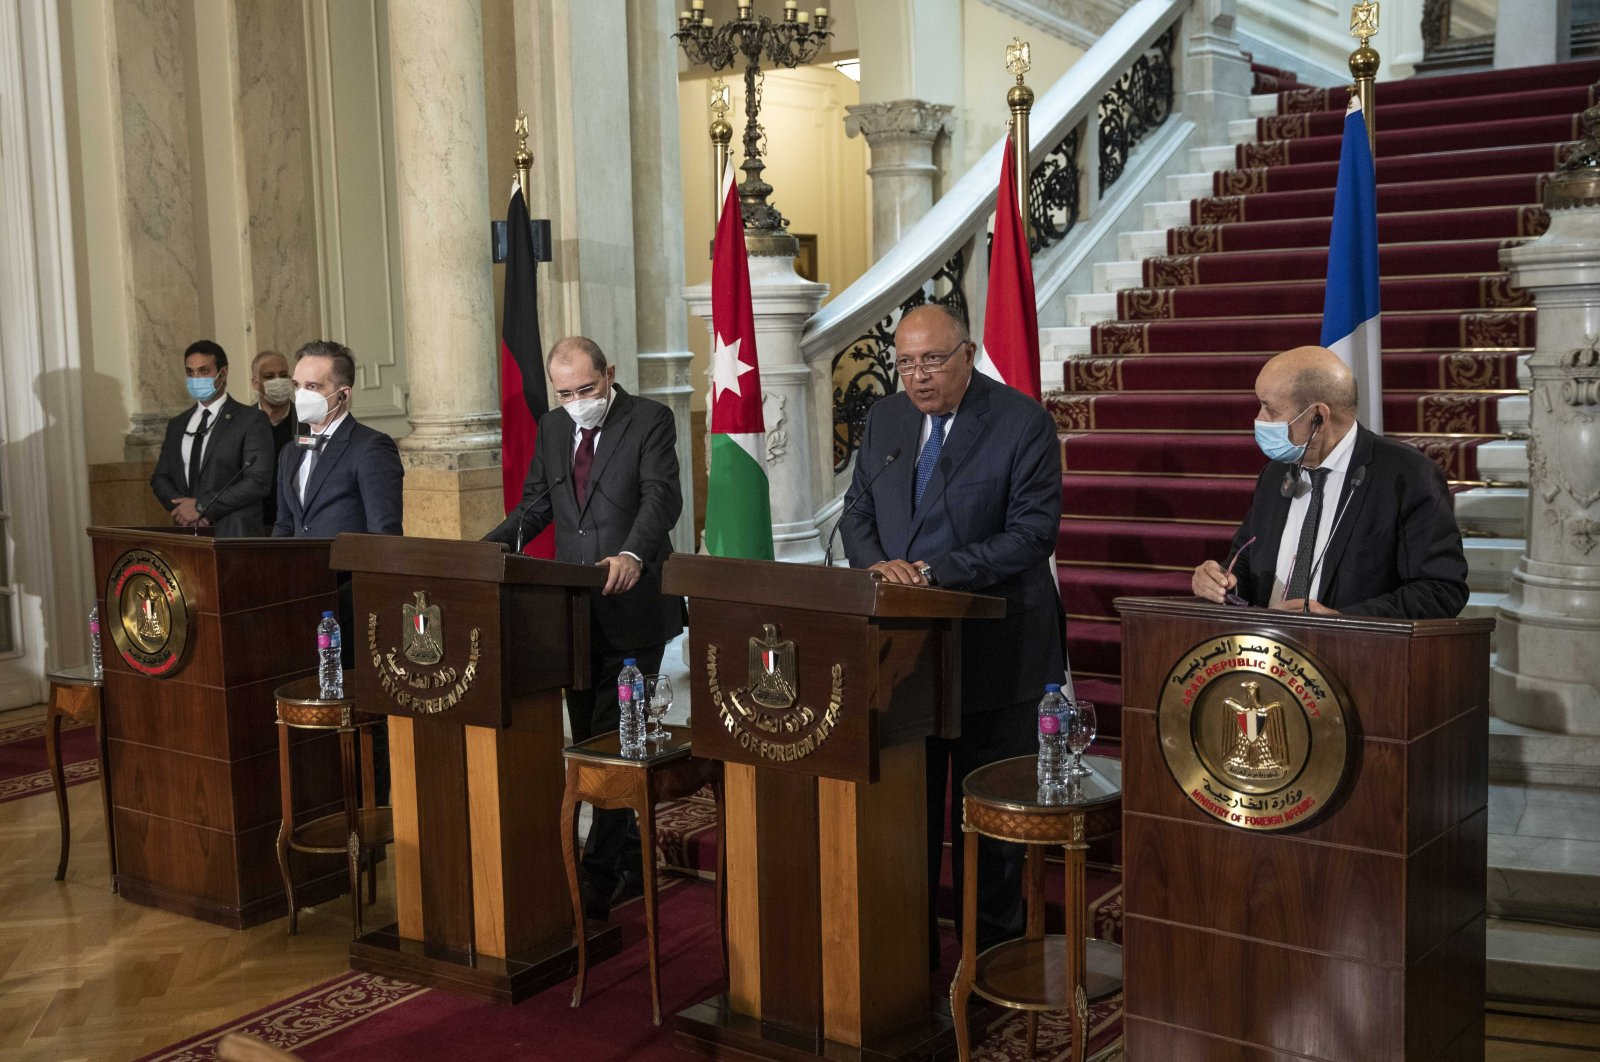 From left to right, German Foreign Minister Heiko Maas, Jordanian Foreign Minister Ayman Safadi, Egyptian Foreign Minister Sameh Shoukry and French Foreign Minister Jean-Yves Le Drian hold a news conference at Tahrir Palace, in Cairo, Egypt, Jan. 11, 2021. (AP Photo)